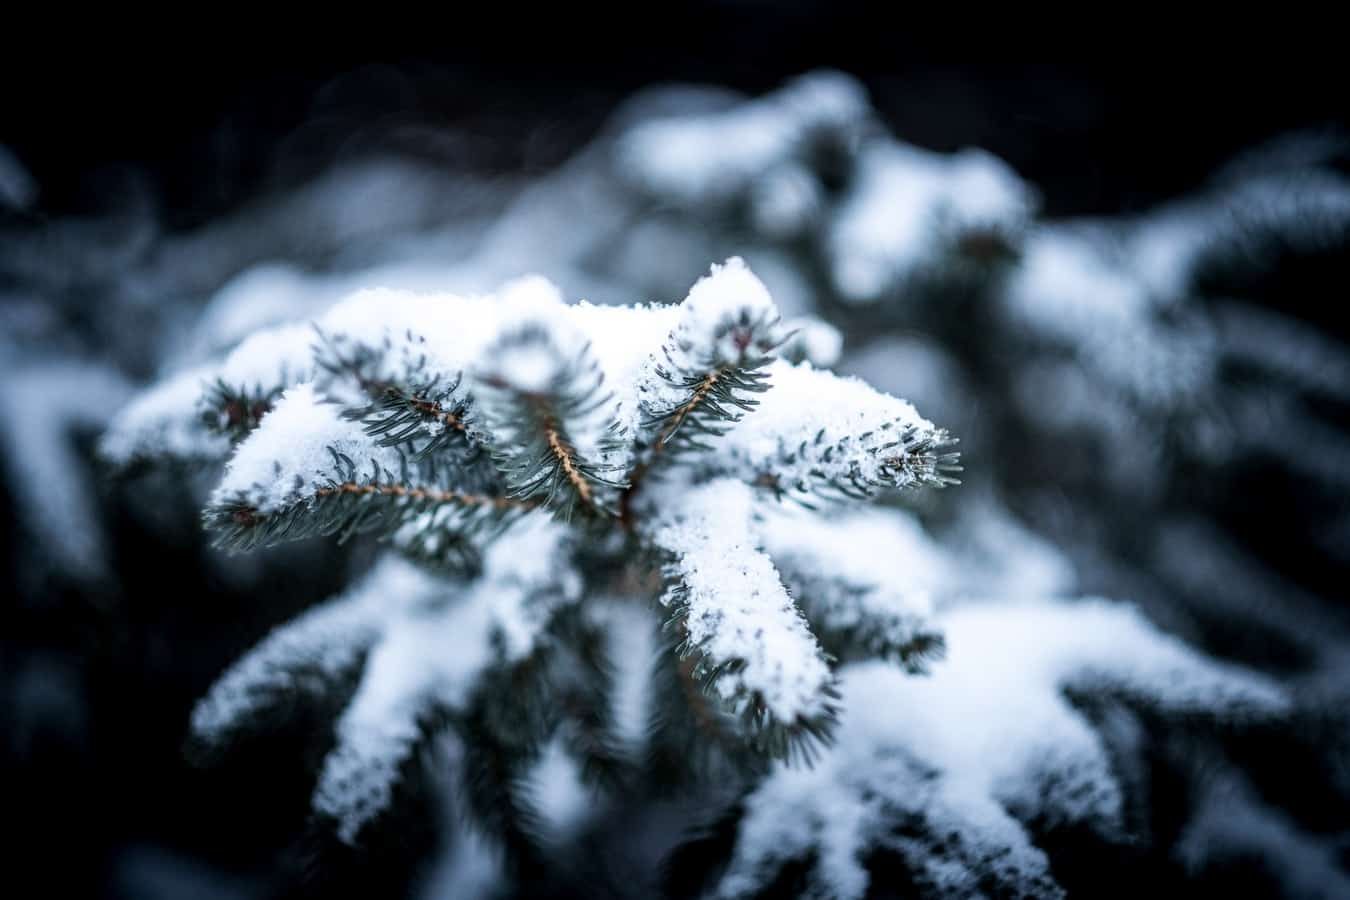 Snow on a Christmas tree branch